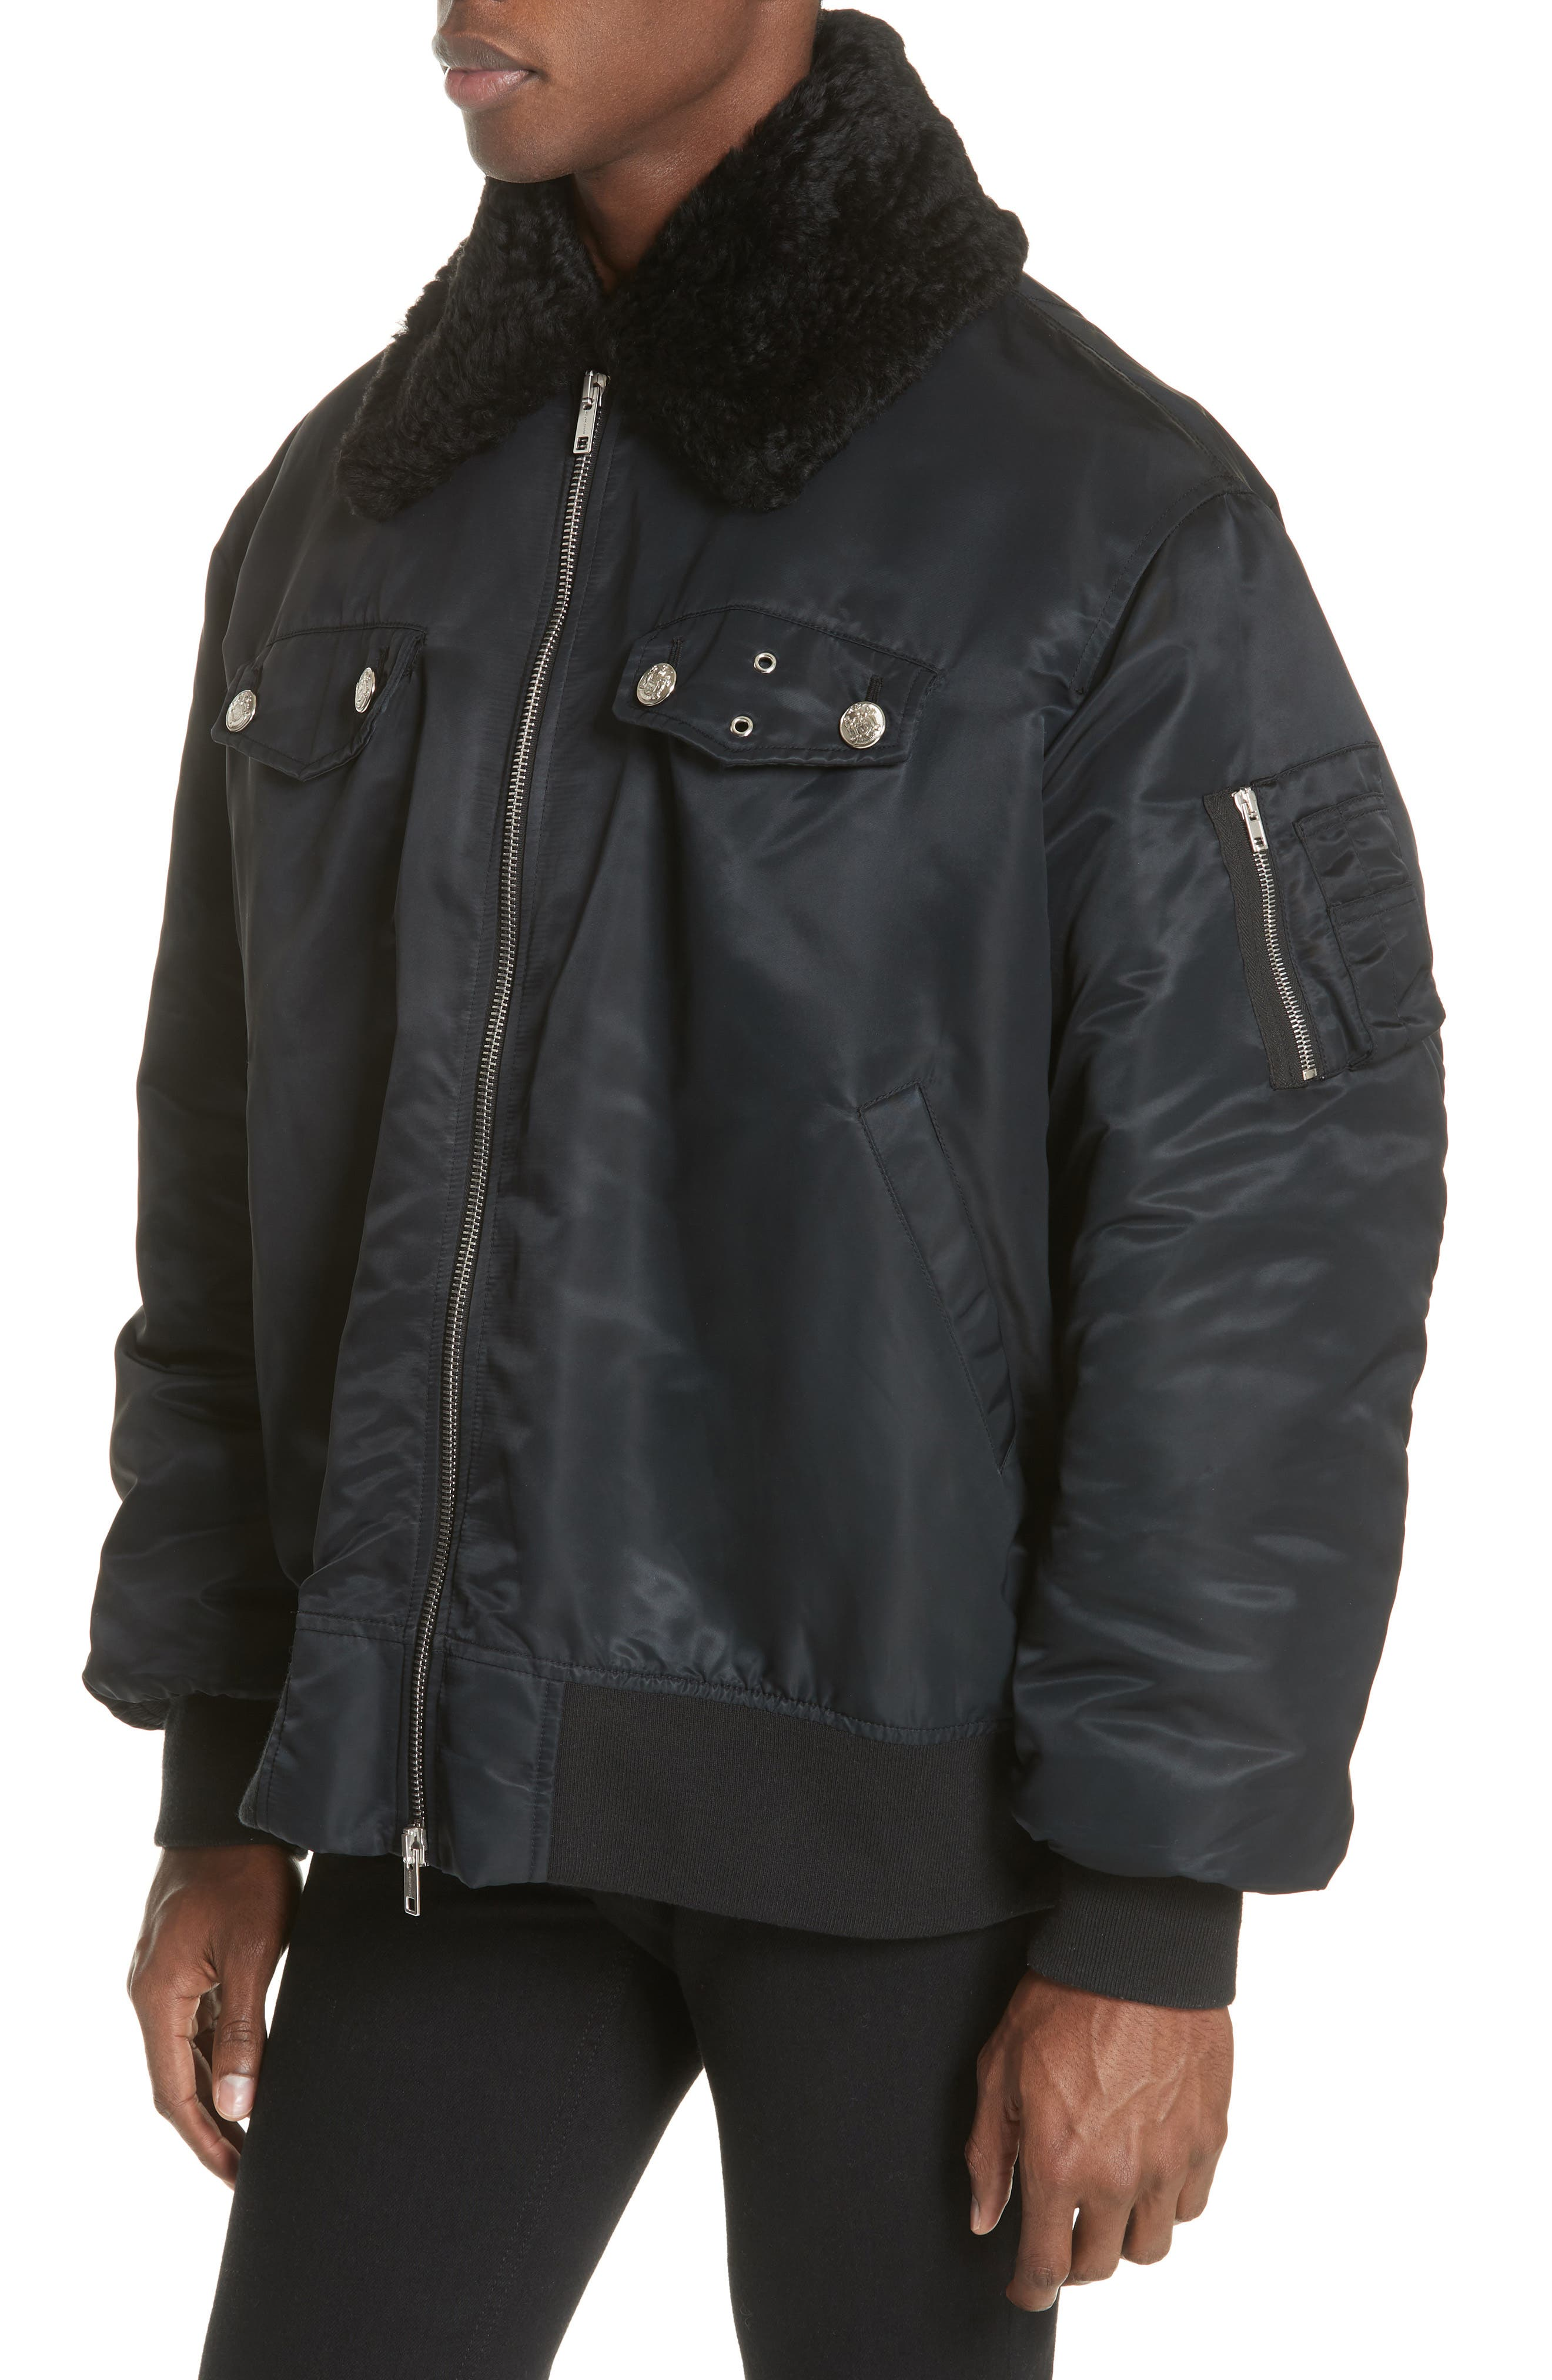 Oversize Bomber Jacket with Genuine Shearling Collar,                             Alternate thumbnail 4, color,                             001